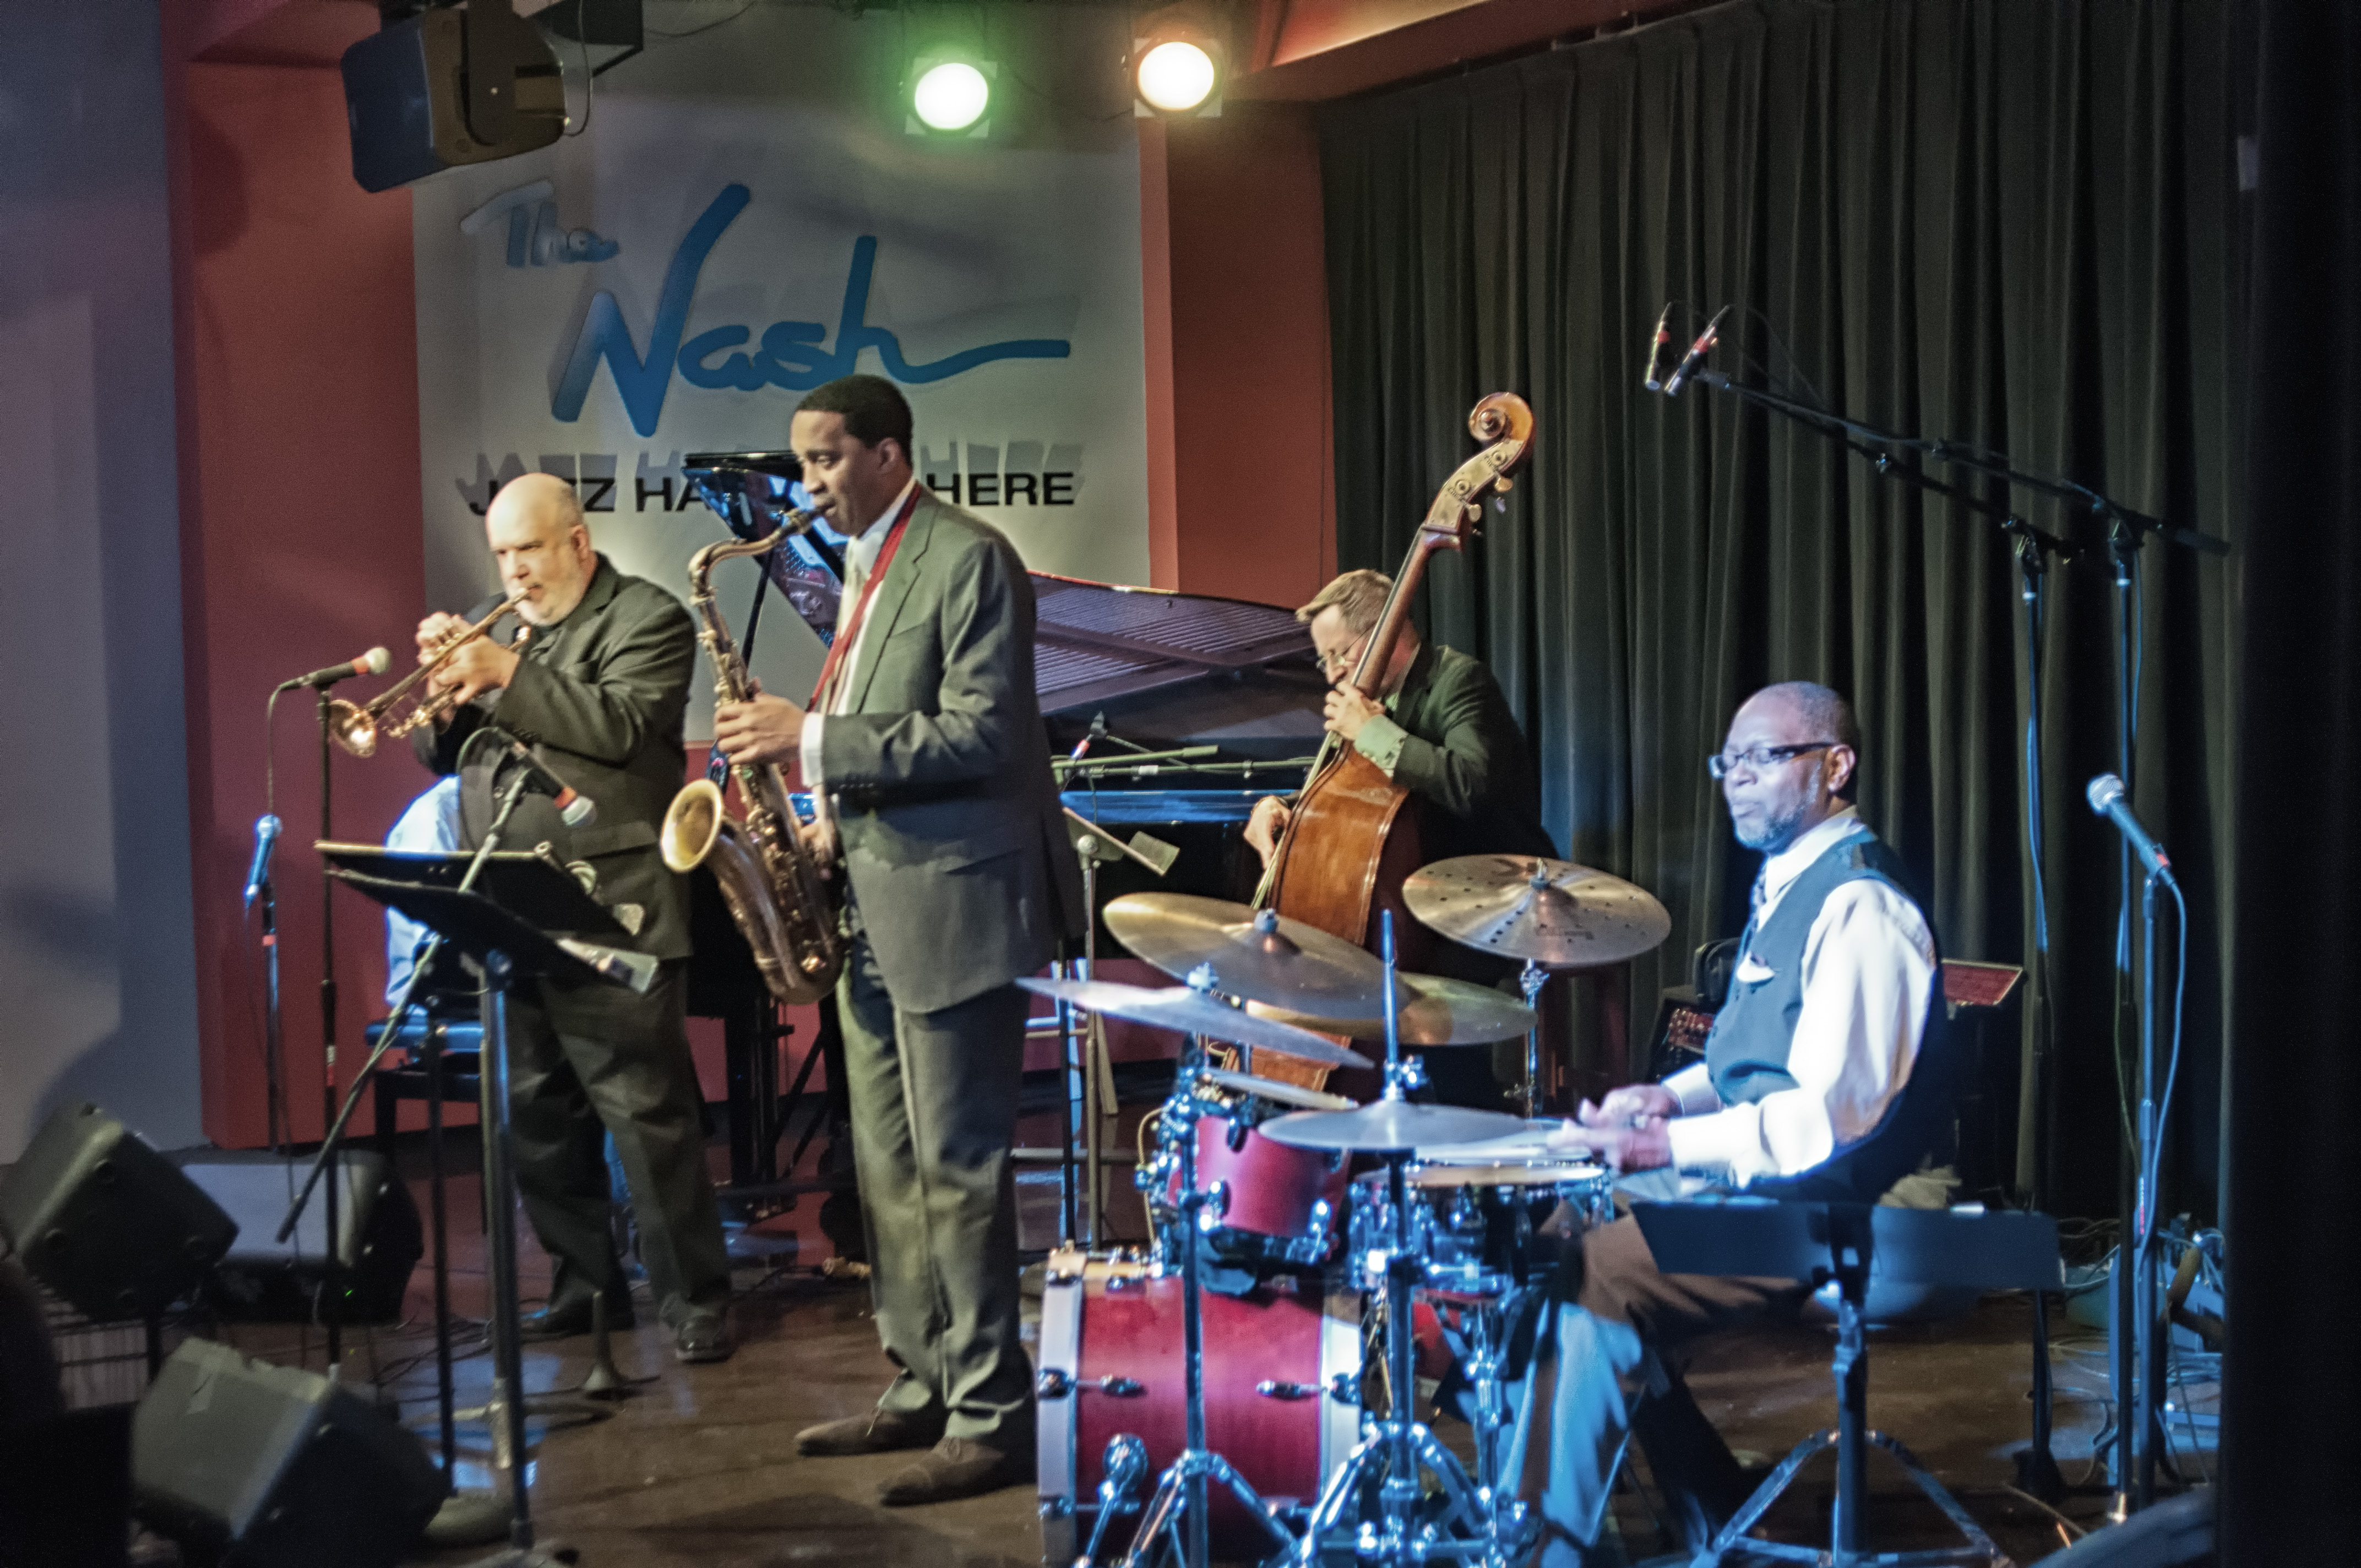 The Lewis Nash All Stars With George Cables, Randy Brecker, George Mraz, Javon Jackson And Lewis Nash At The Nash In Phoenix